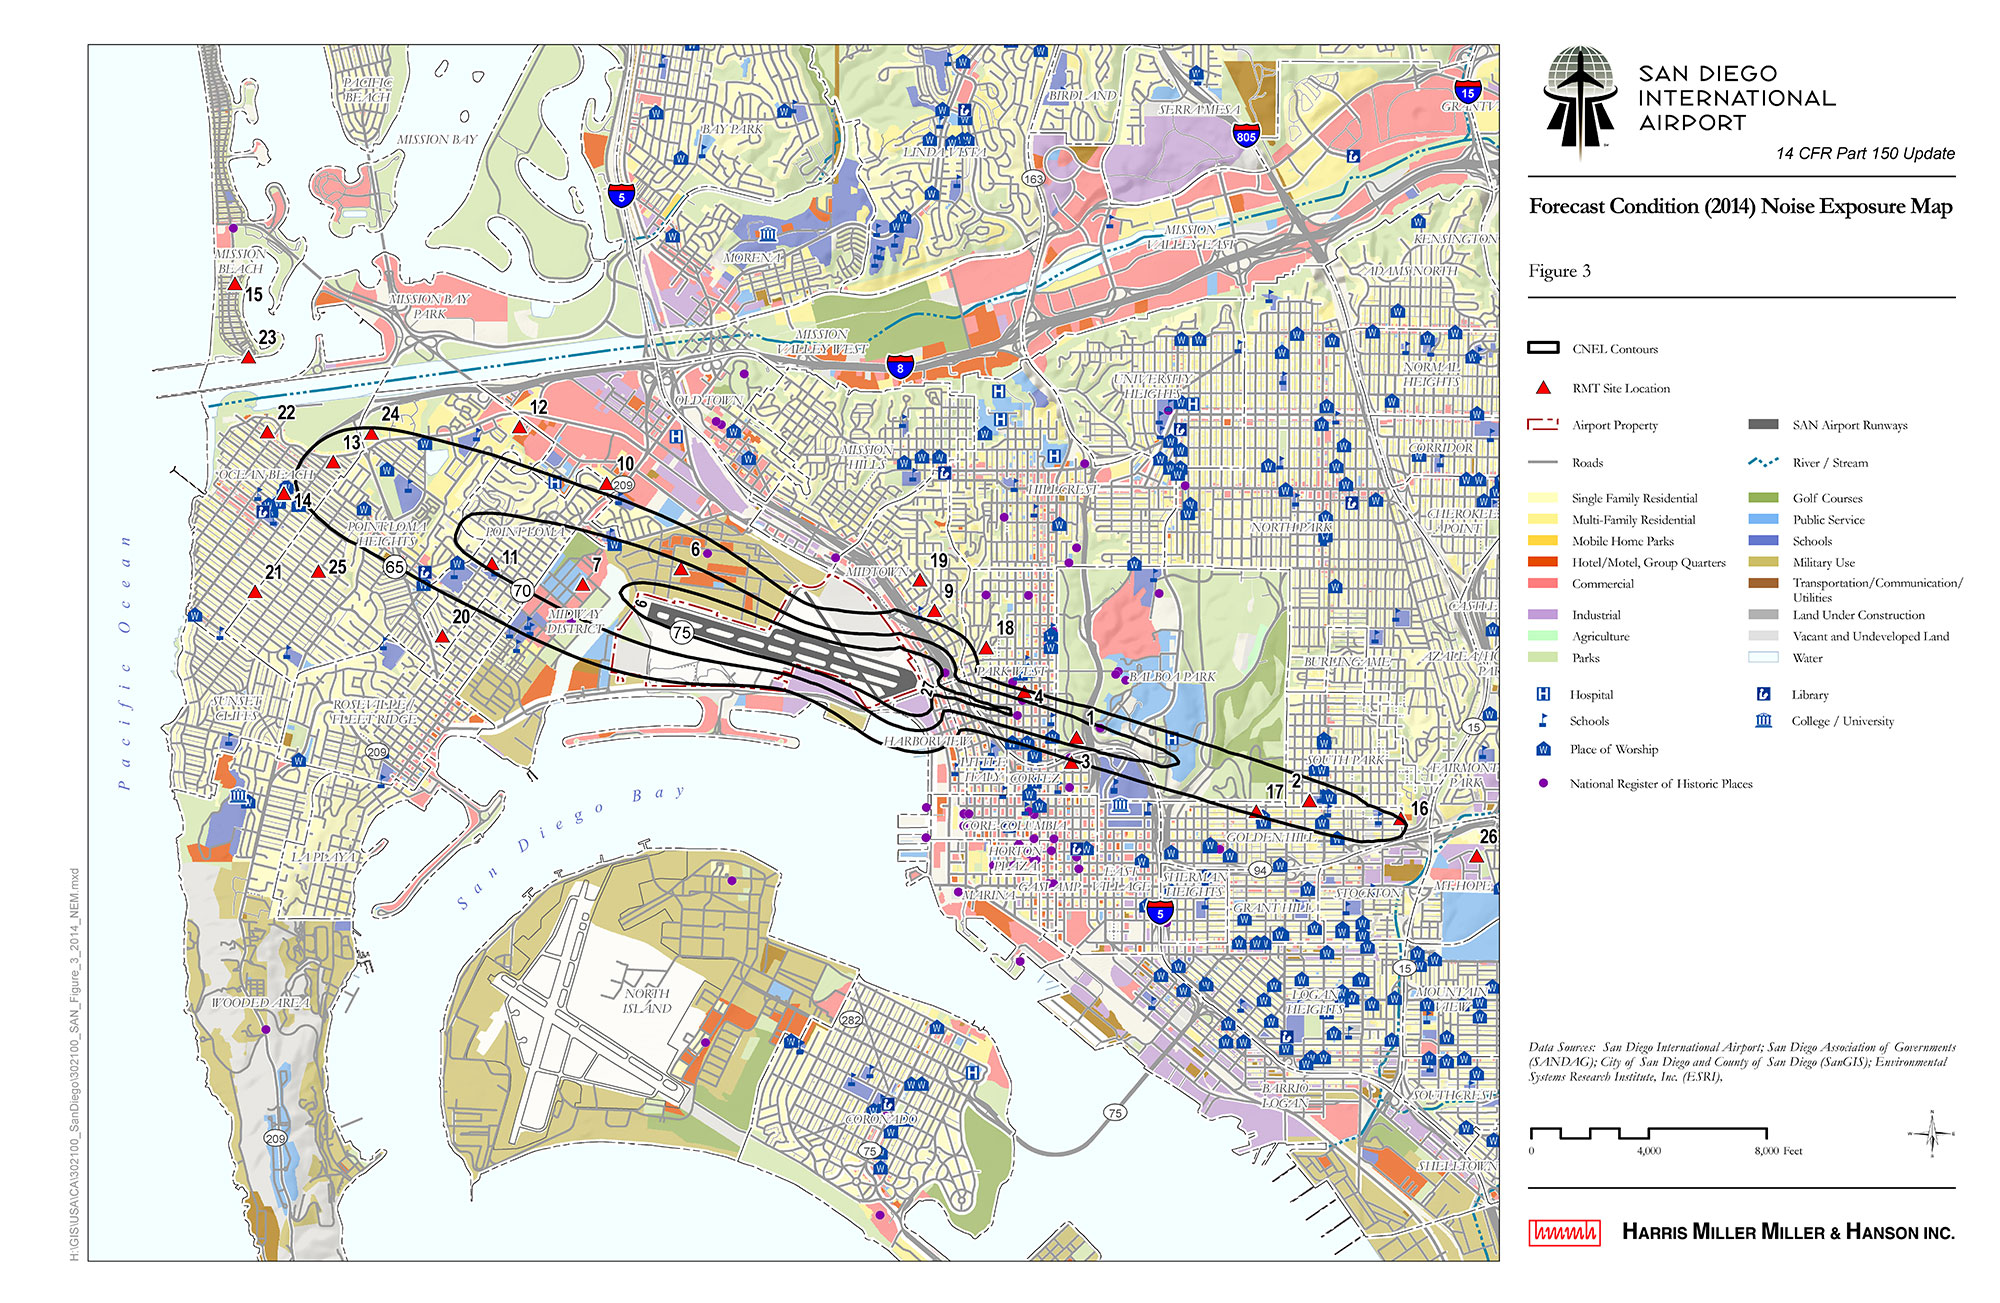 14 CFR Part 150 Noise Study, San Diego International Airport